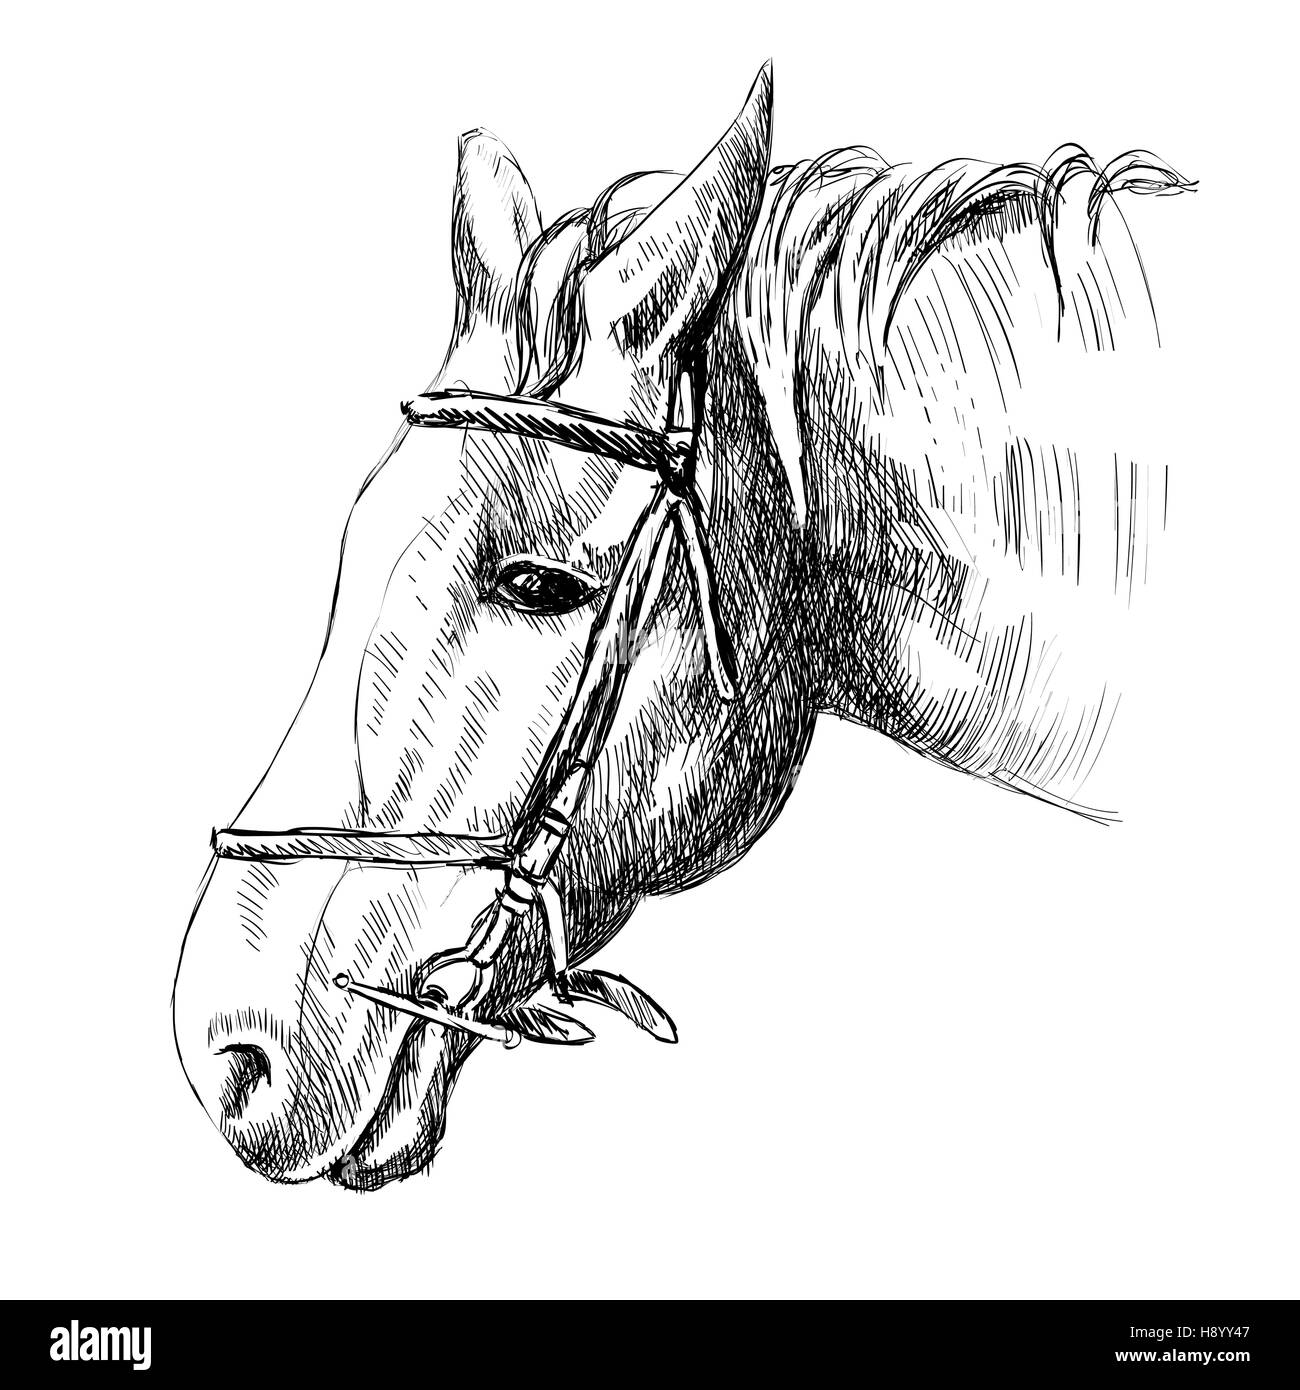 Horse Head Sketch For Stock Photos & Horse Head Sketch For